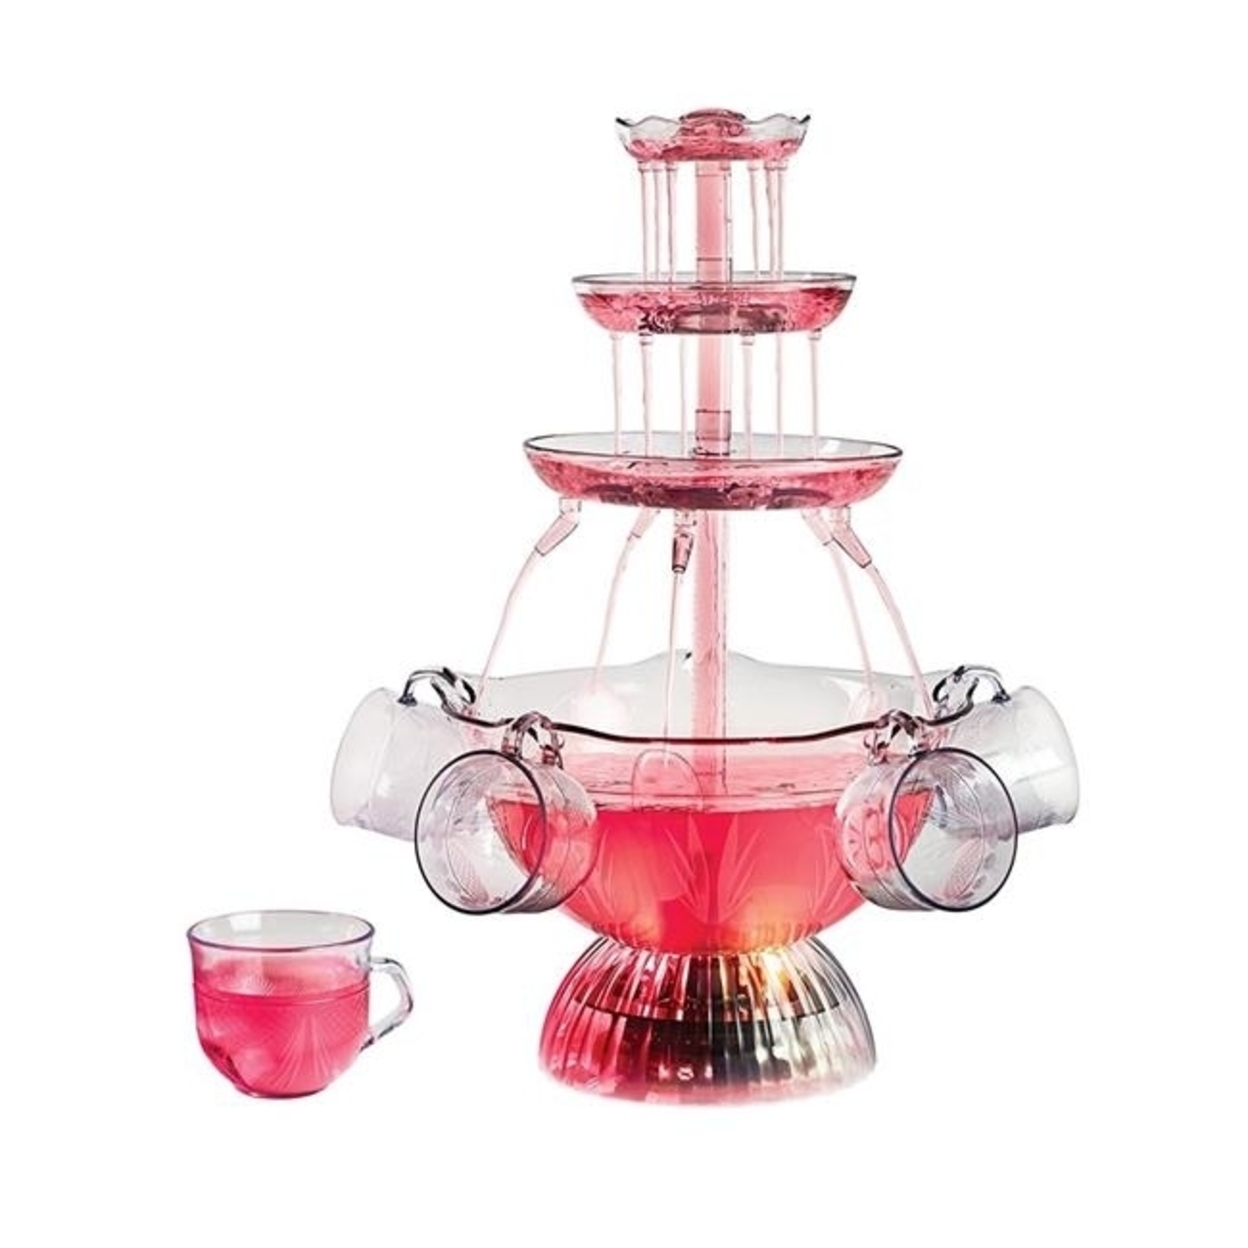 Nostalgia Lpf150 Vintage Collection Lighted Party Fountain 59f0e14e2a00e41b99736d24